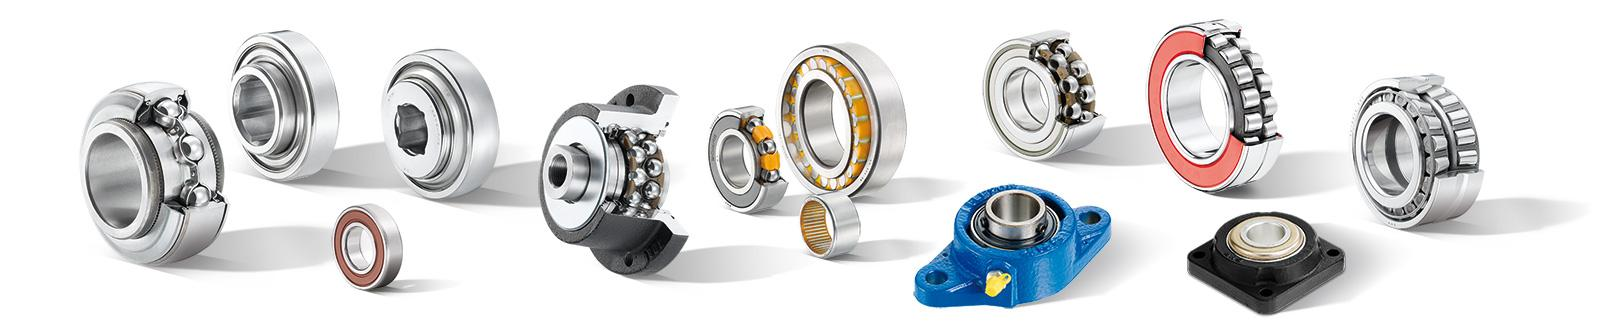 NTN Agricultural bearings